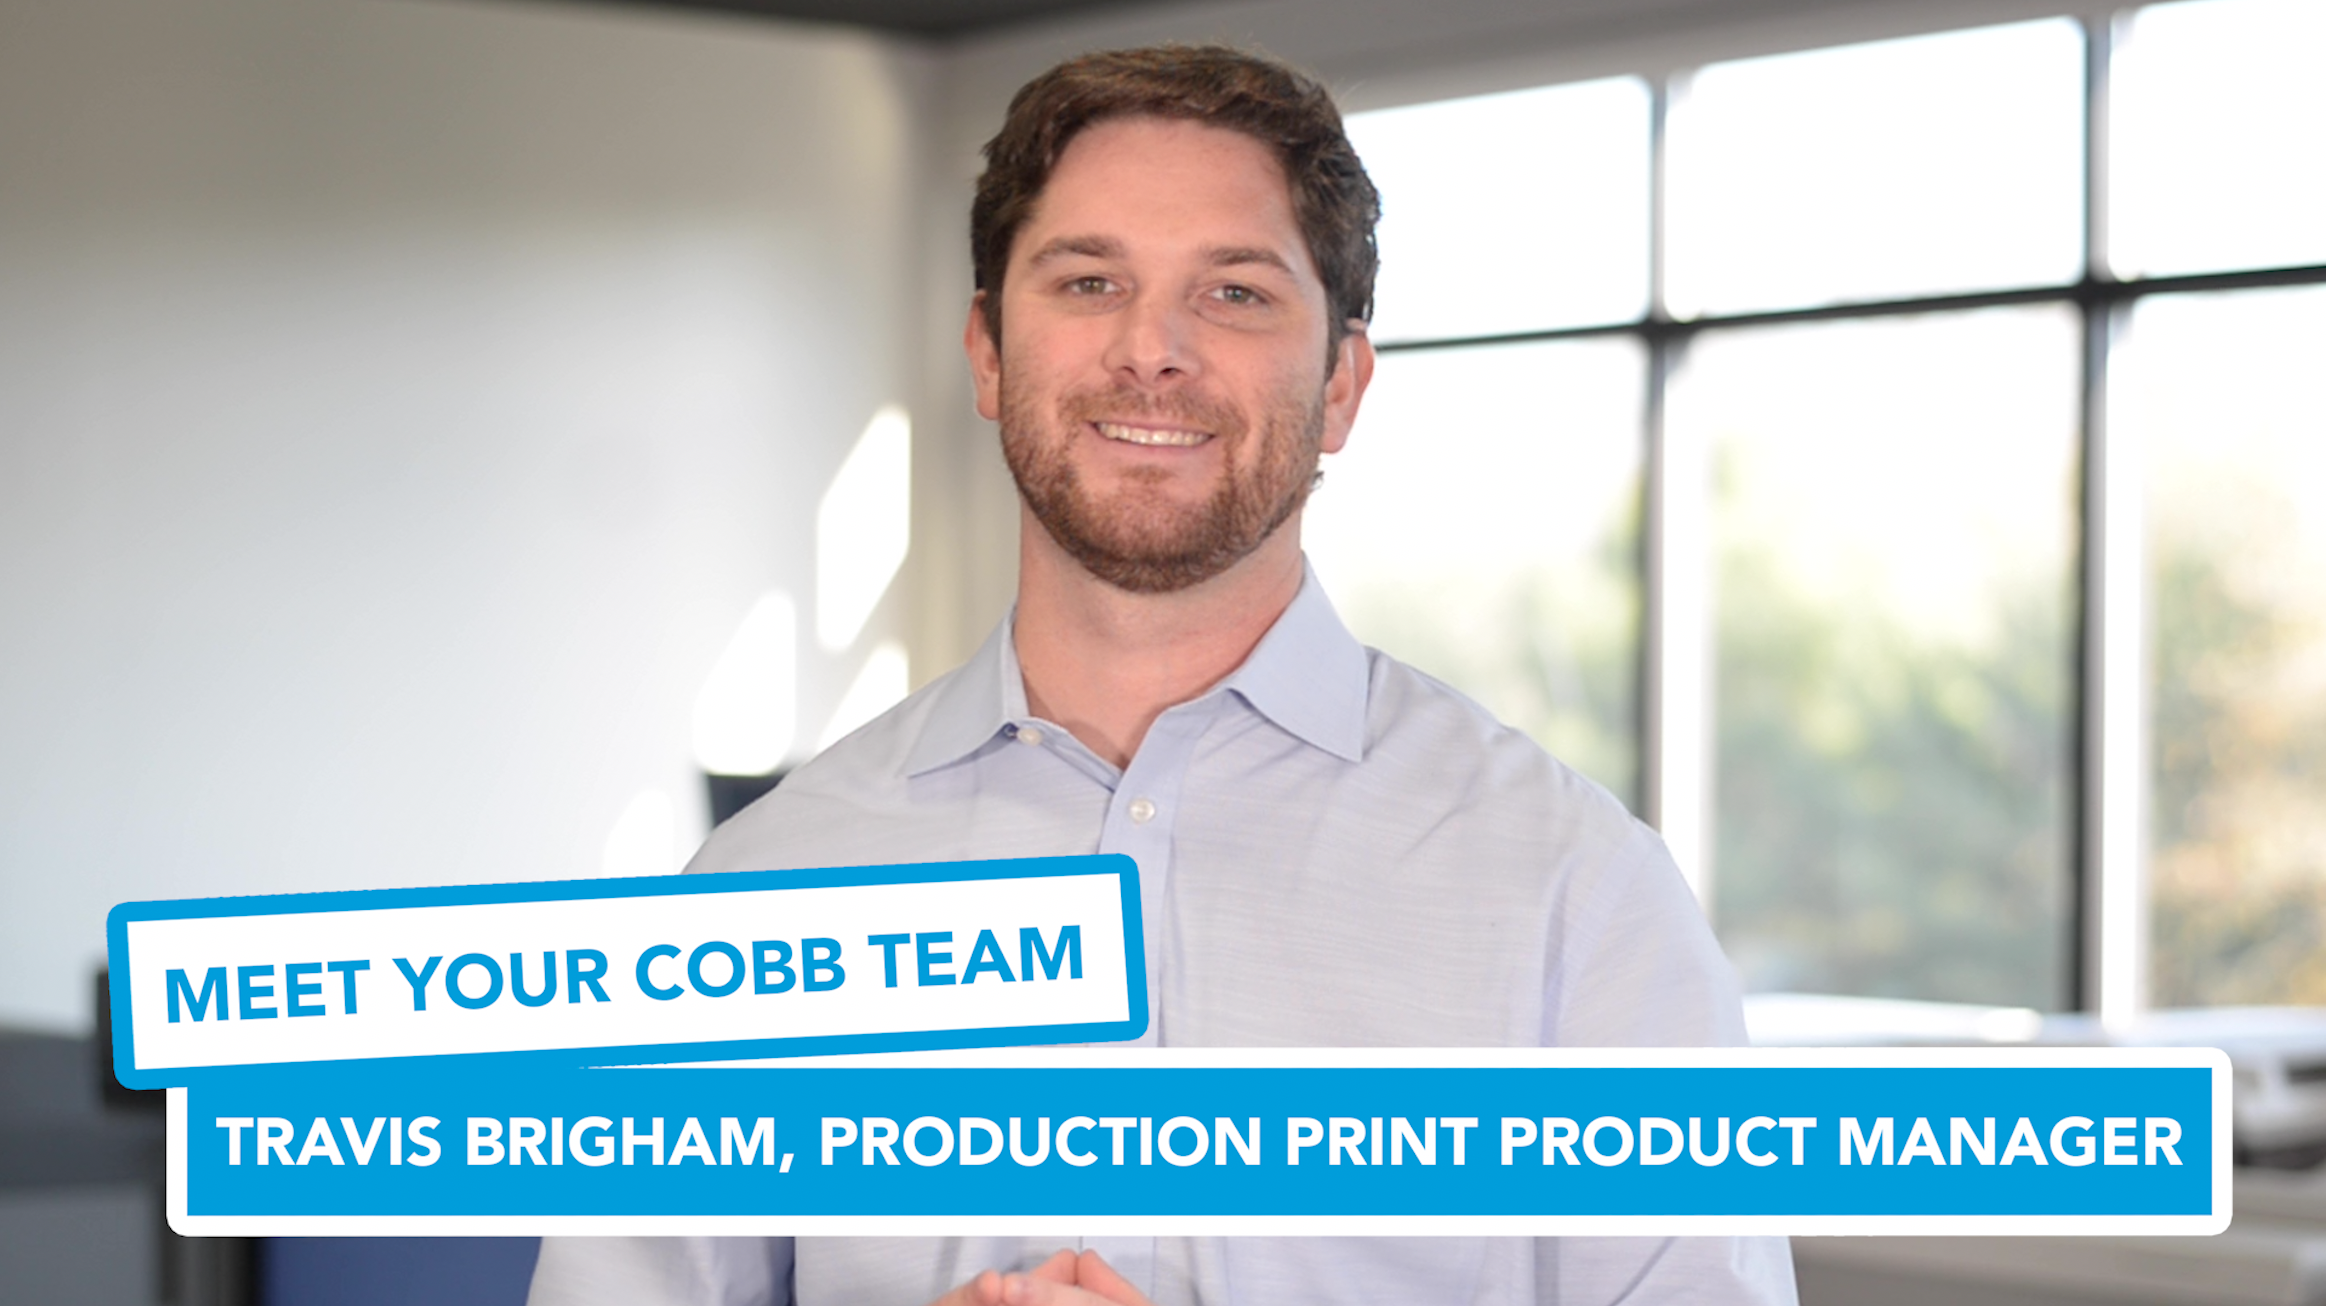 Meet Your Cobb Team: Travis Brigham, Production Print Product Manager